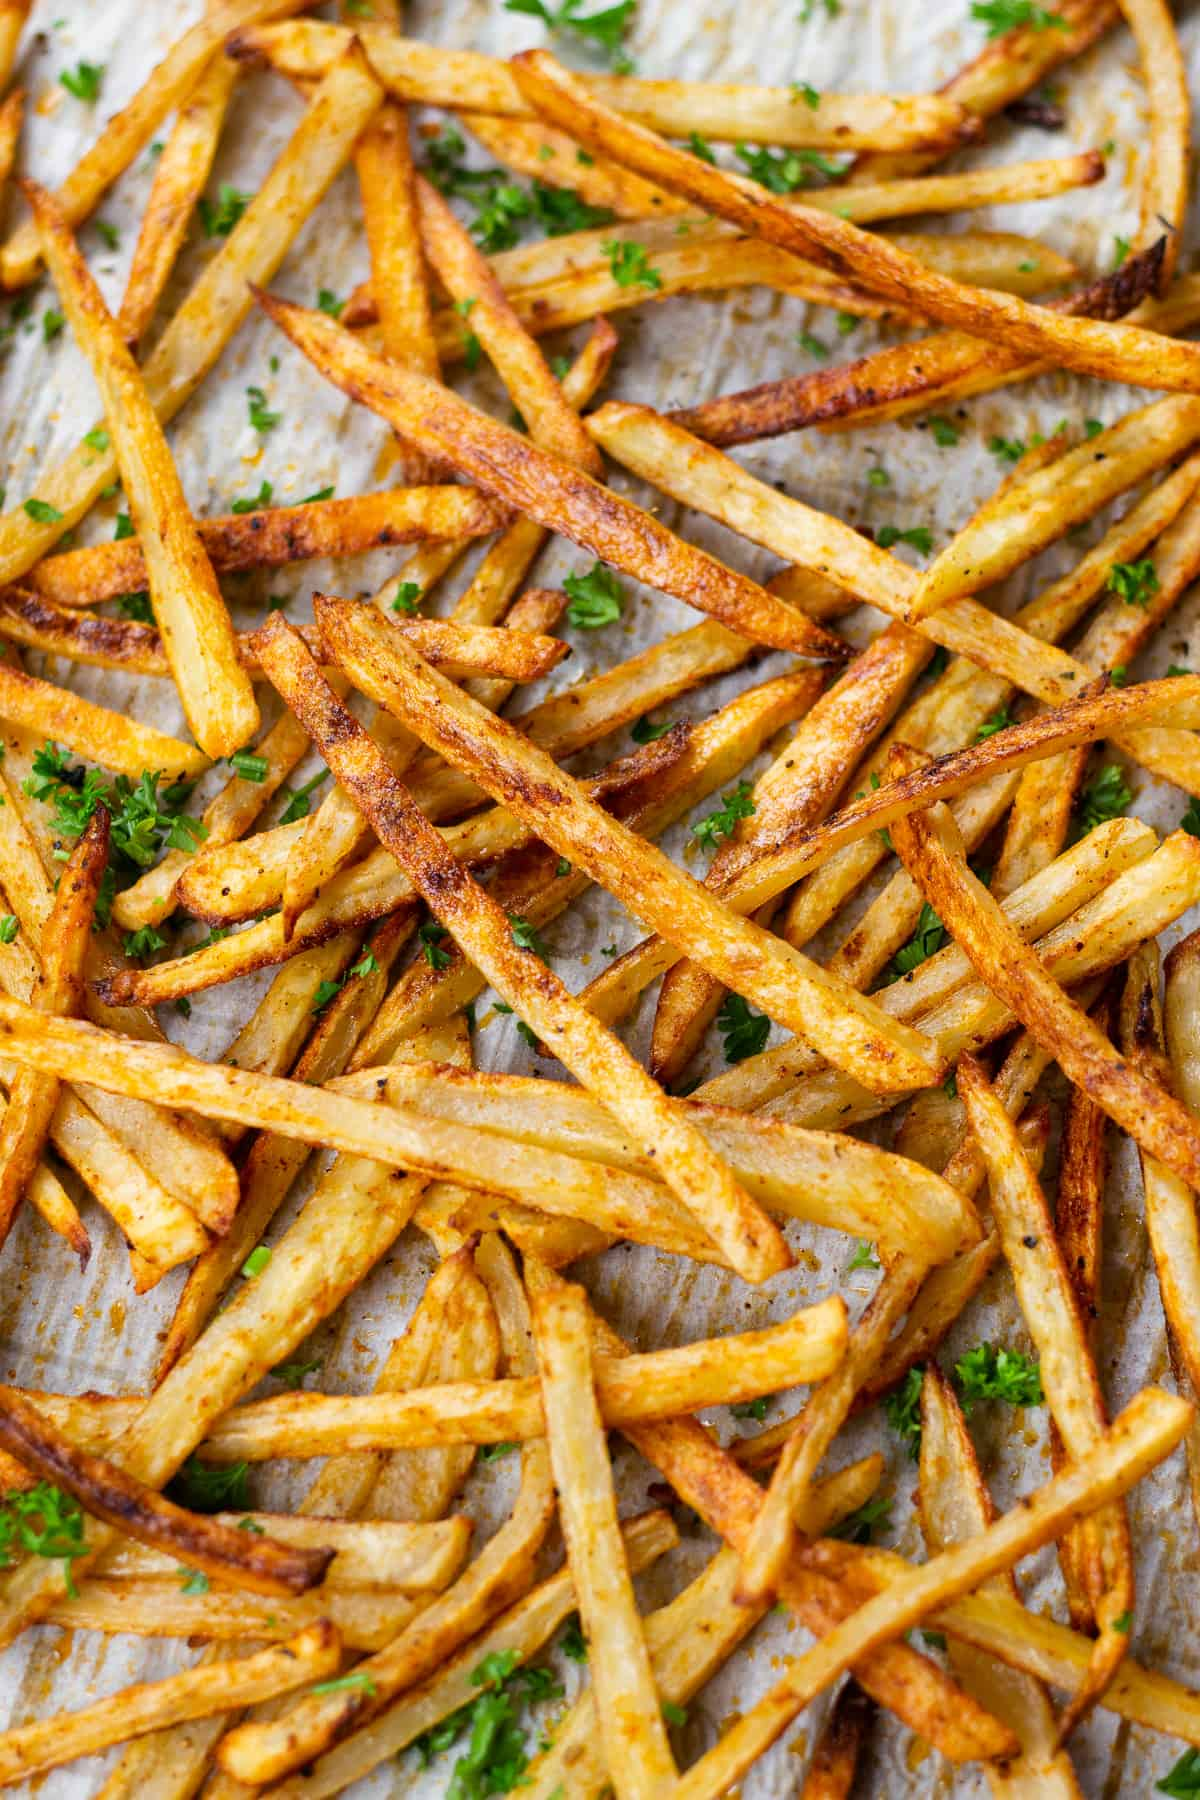 Oven Baked Fries | Veronika's Kitchen